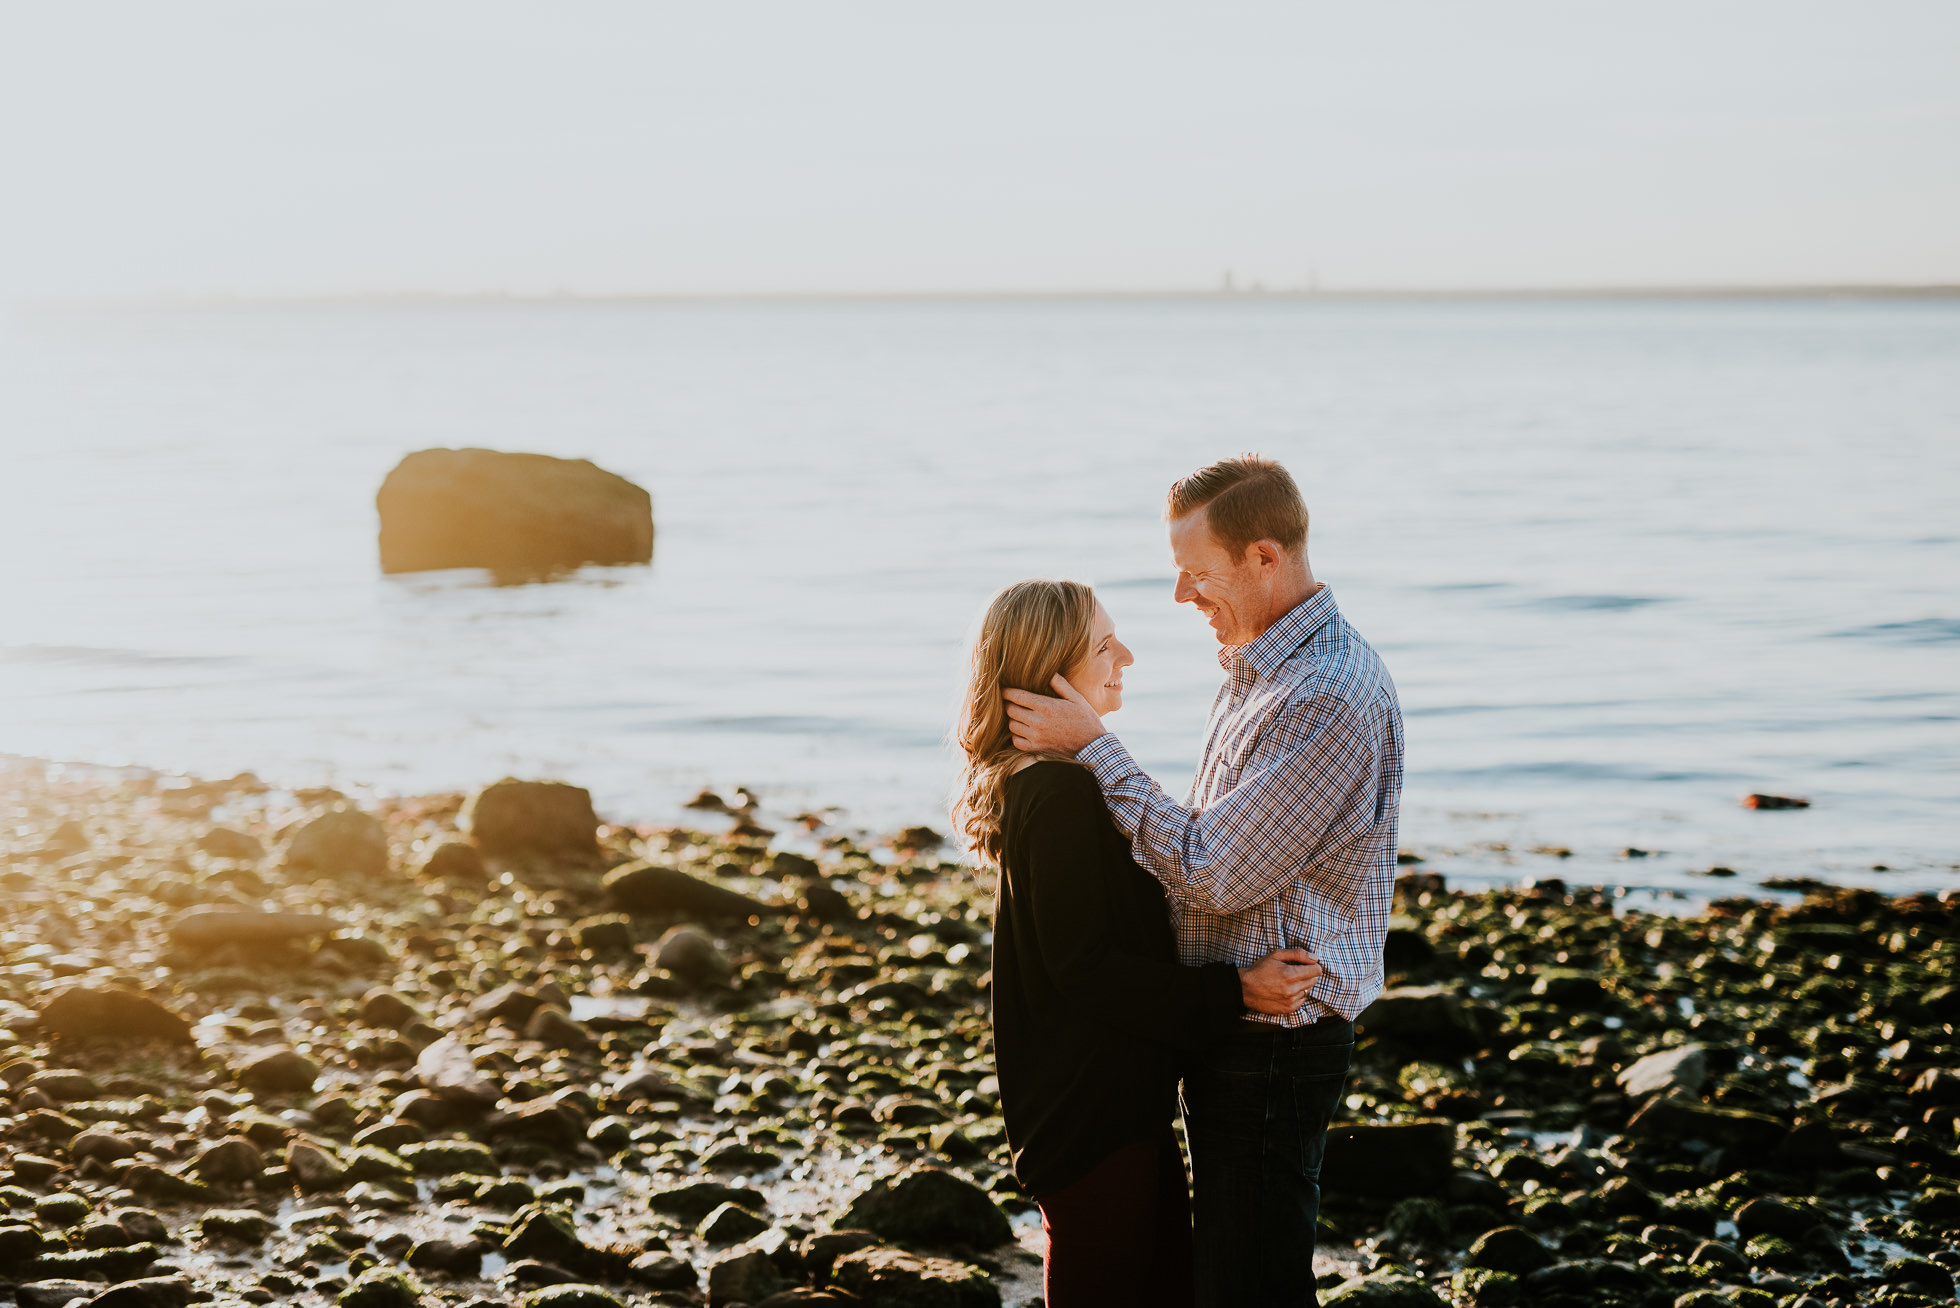 sunset couples portrait session photographed by Traverse the Tides